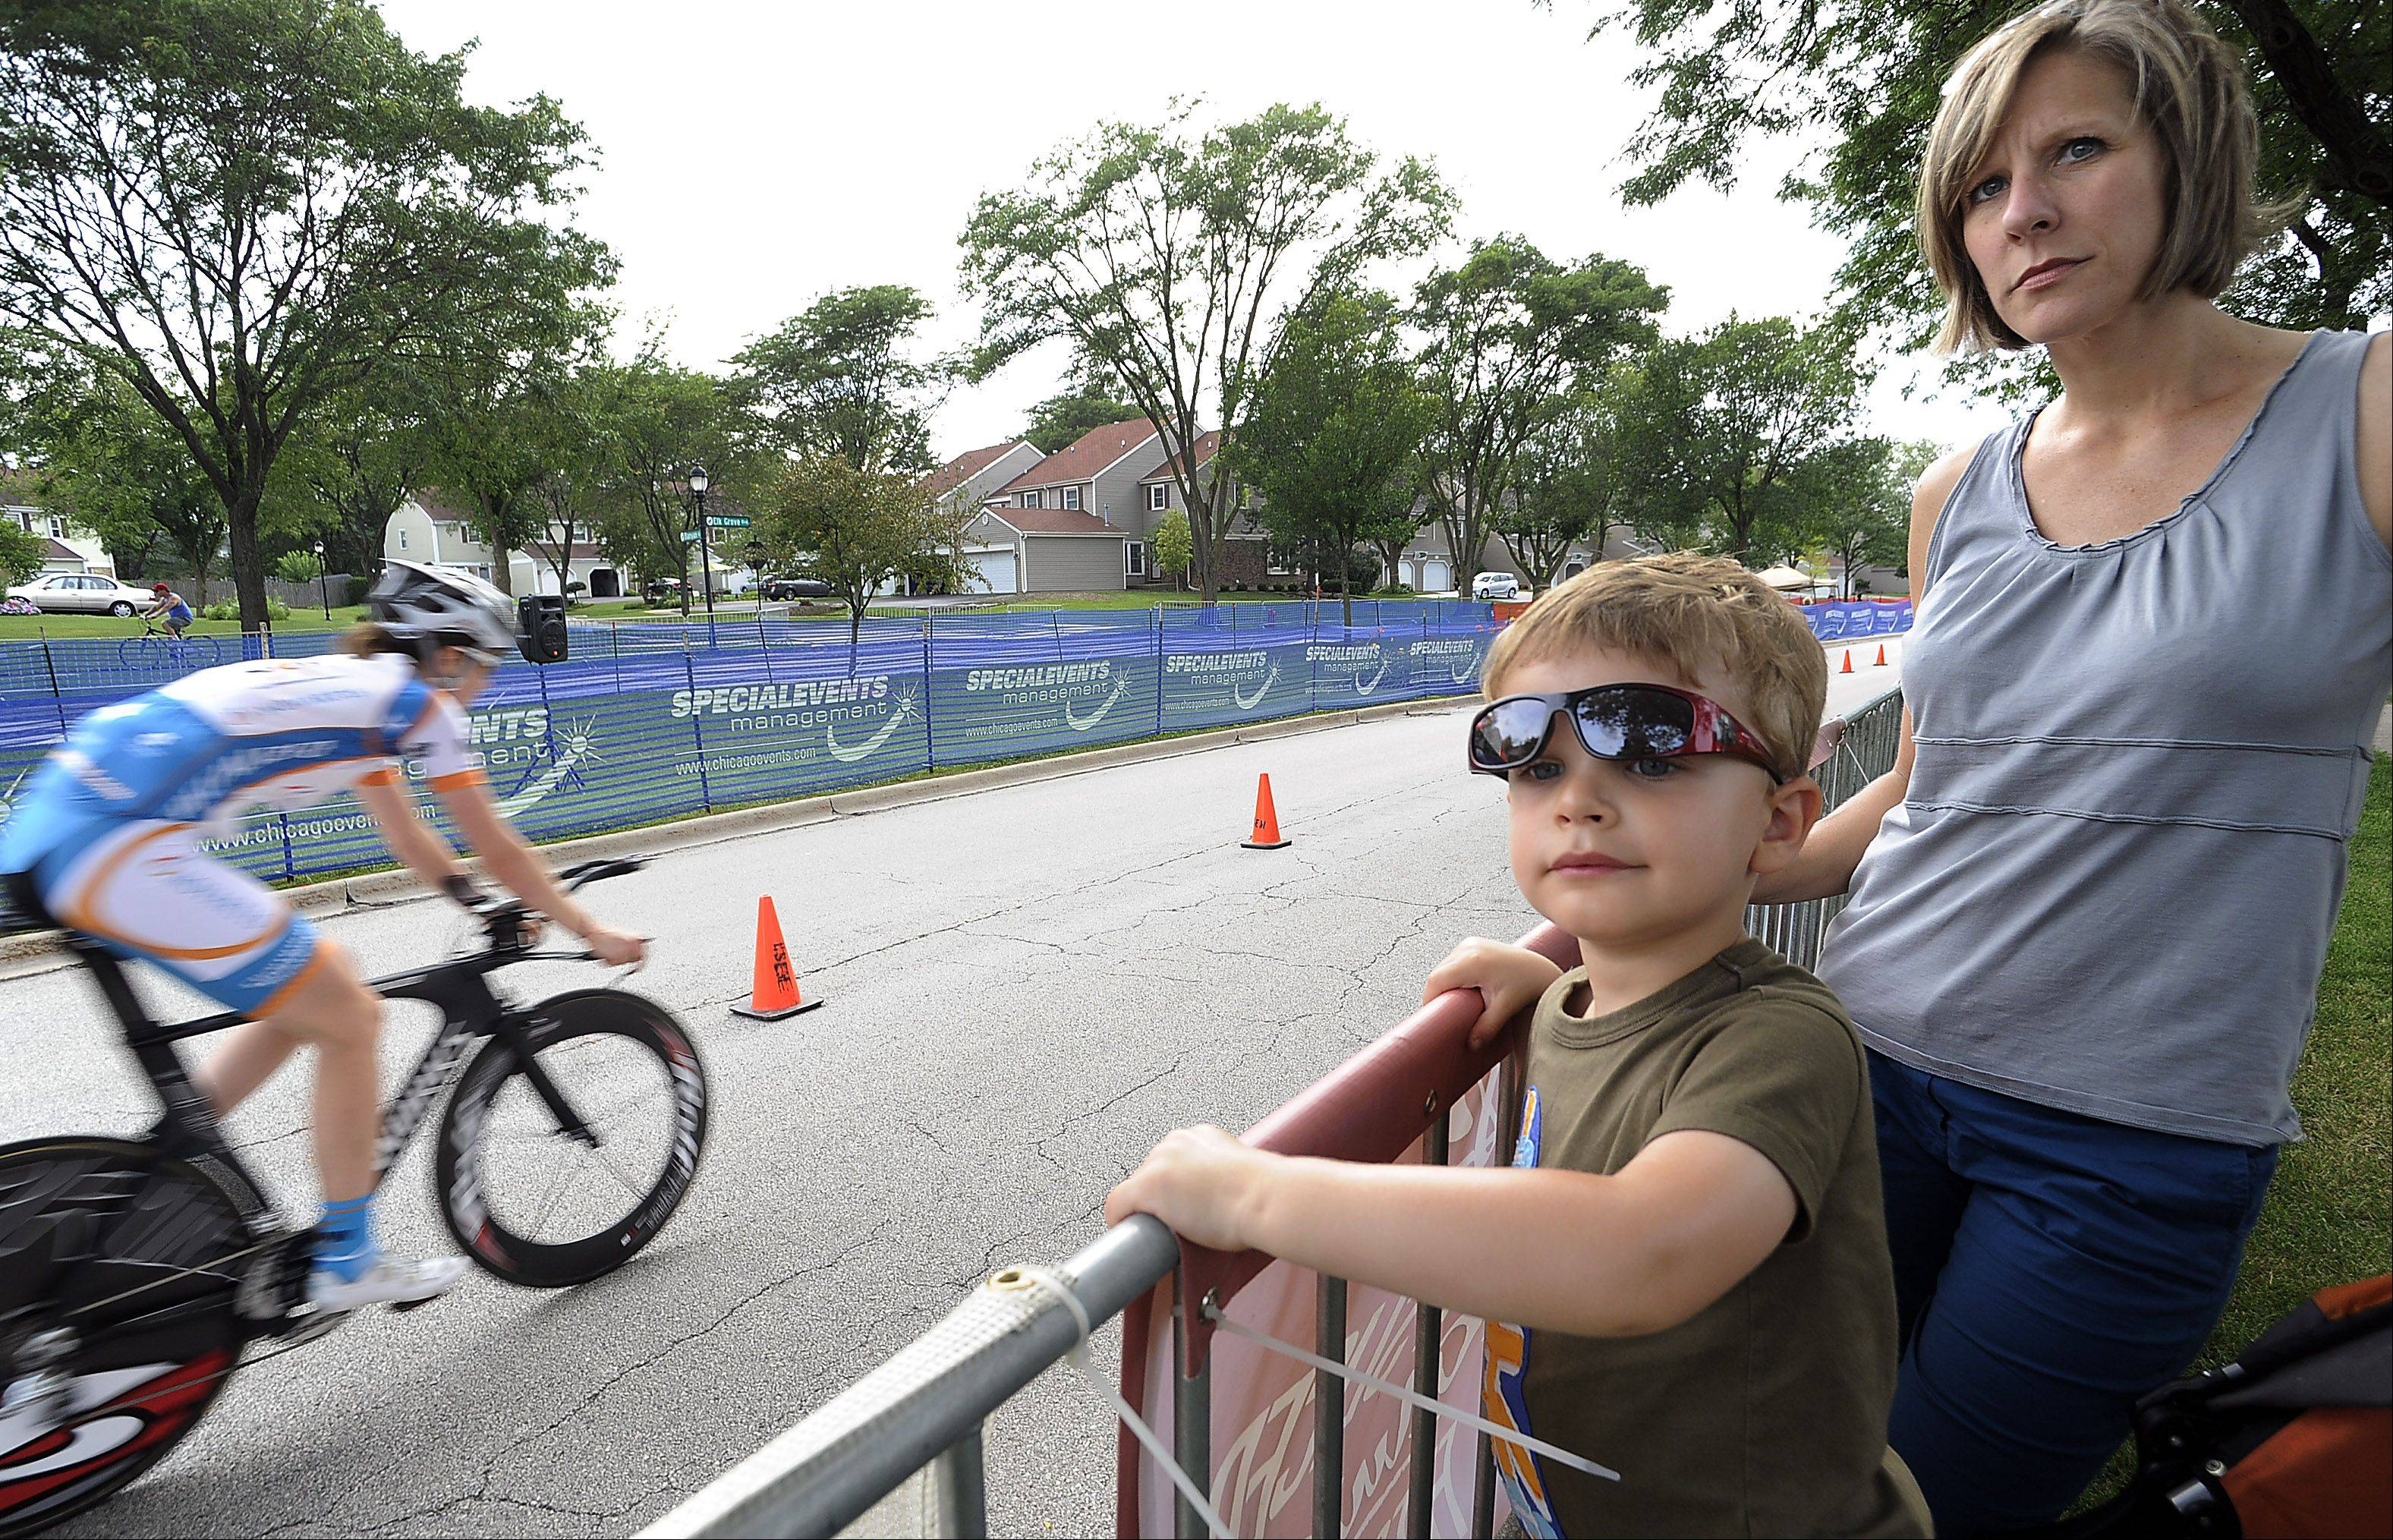 Stephanie Spackey and her son Grant, 3, of Elk Grove watch the women bikers during the 2013 Alexian Brothers Tour of Elk Grove Woodfield Chicago Northwest Convention Bureau Pro Women's time trials on day one of the three-day event on Friday.